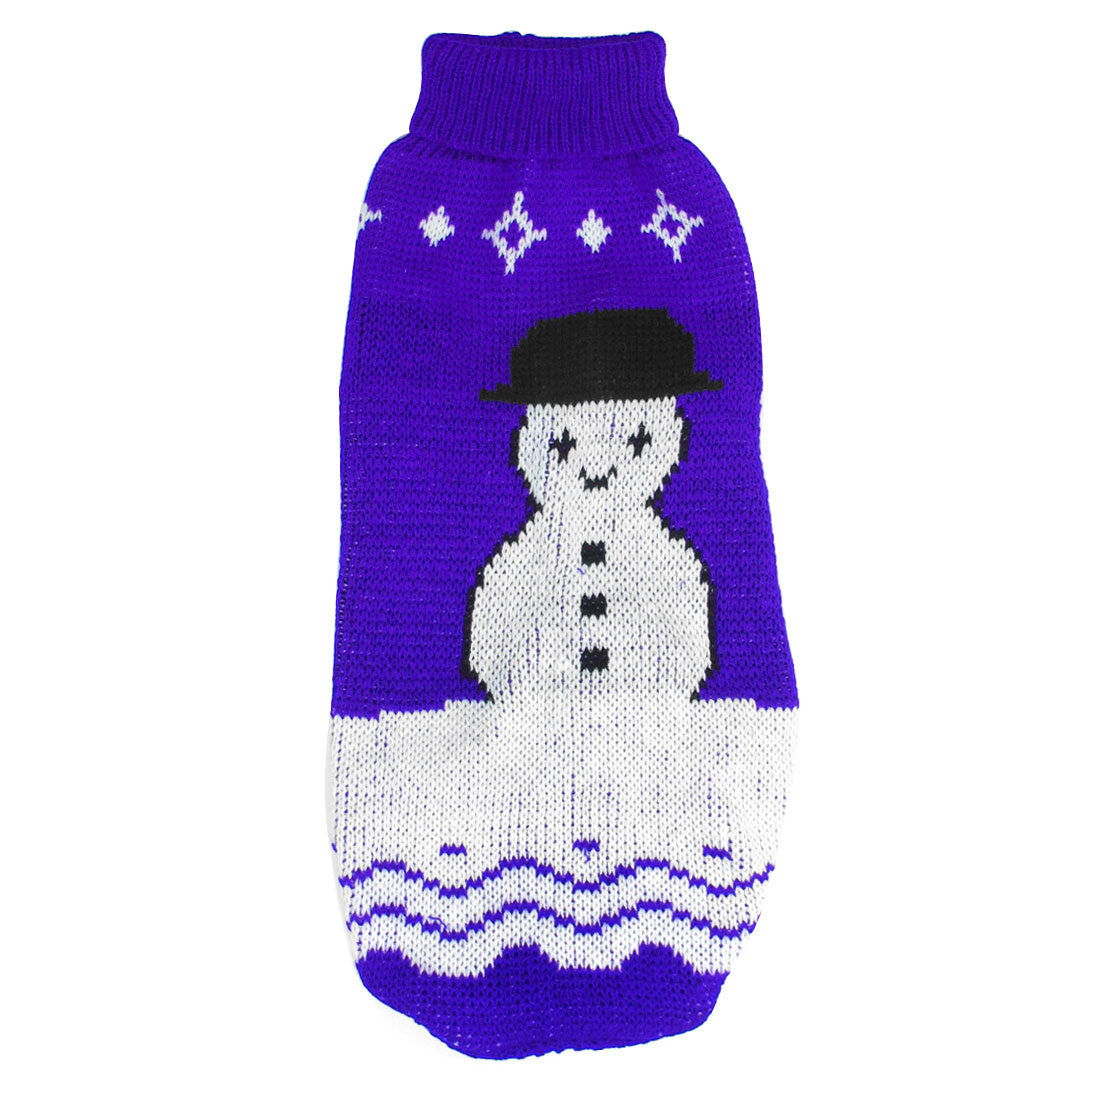 Winter Blue White Black Knitting Snowman Pattern Sleeves Pet Apparel Sweater XS